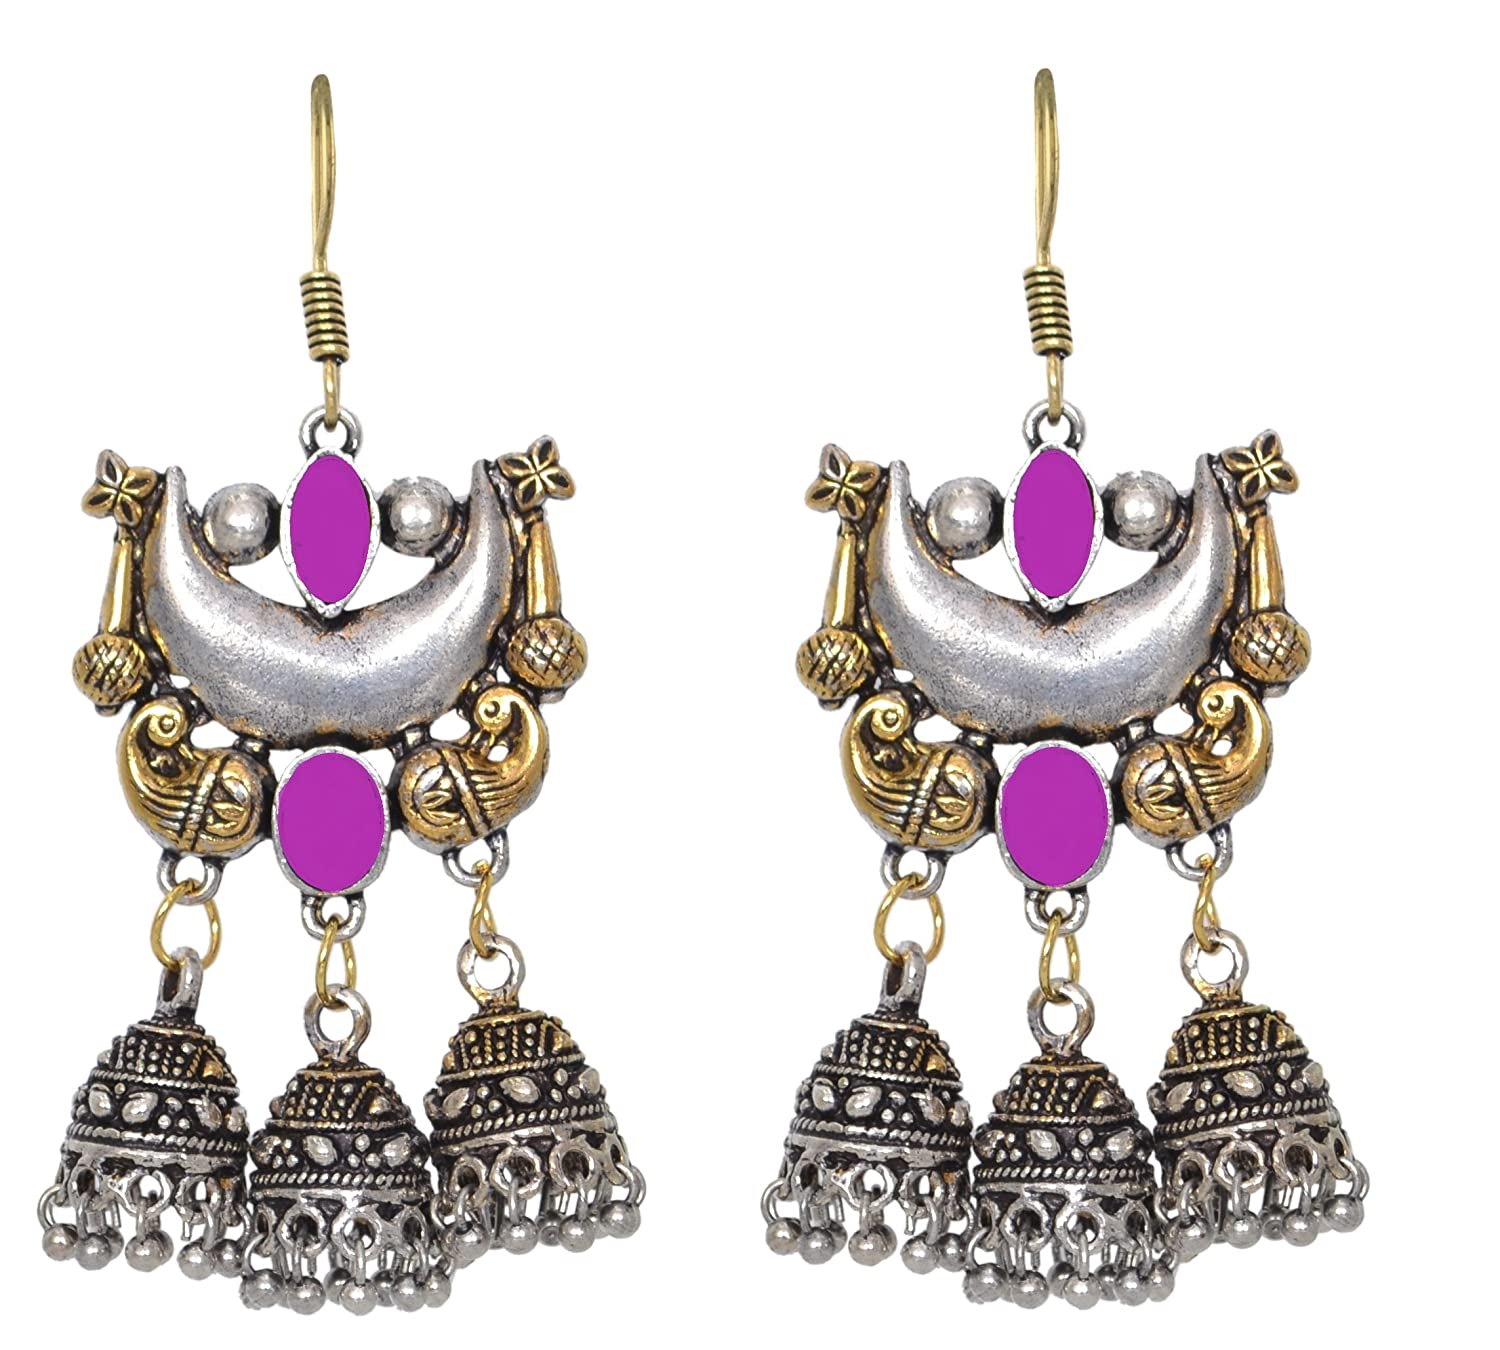 Sansar India Oxidized Dual Tone Jhumka Indian Earrings Jewelry for Girls and Women